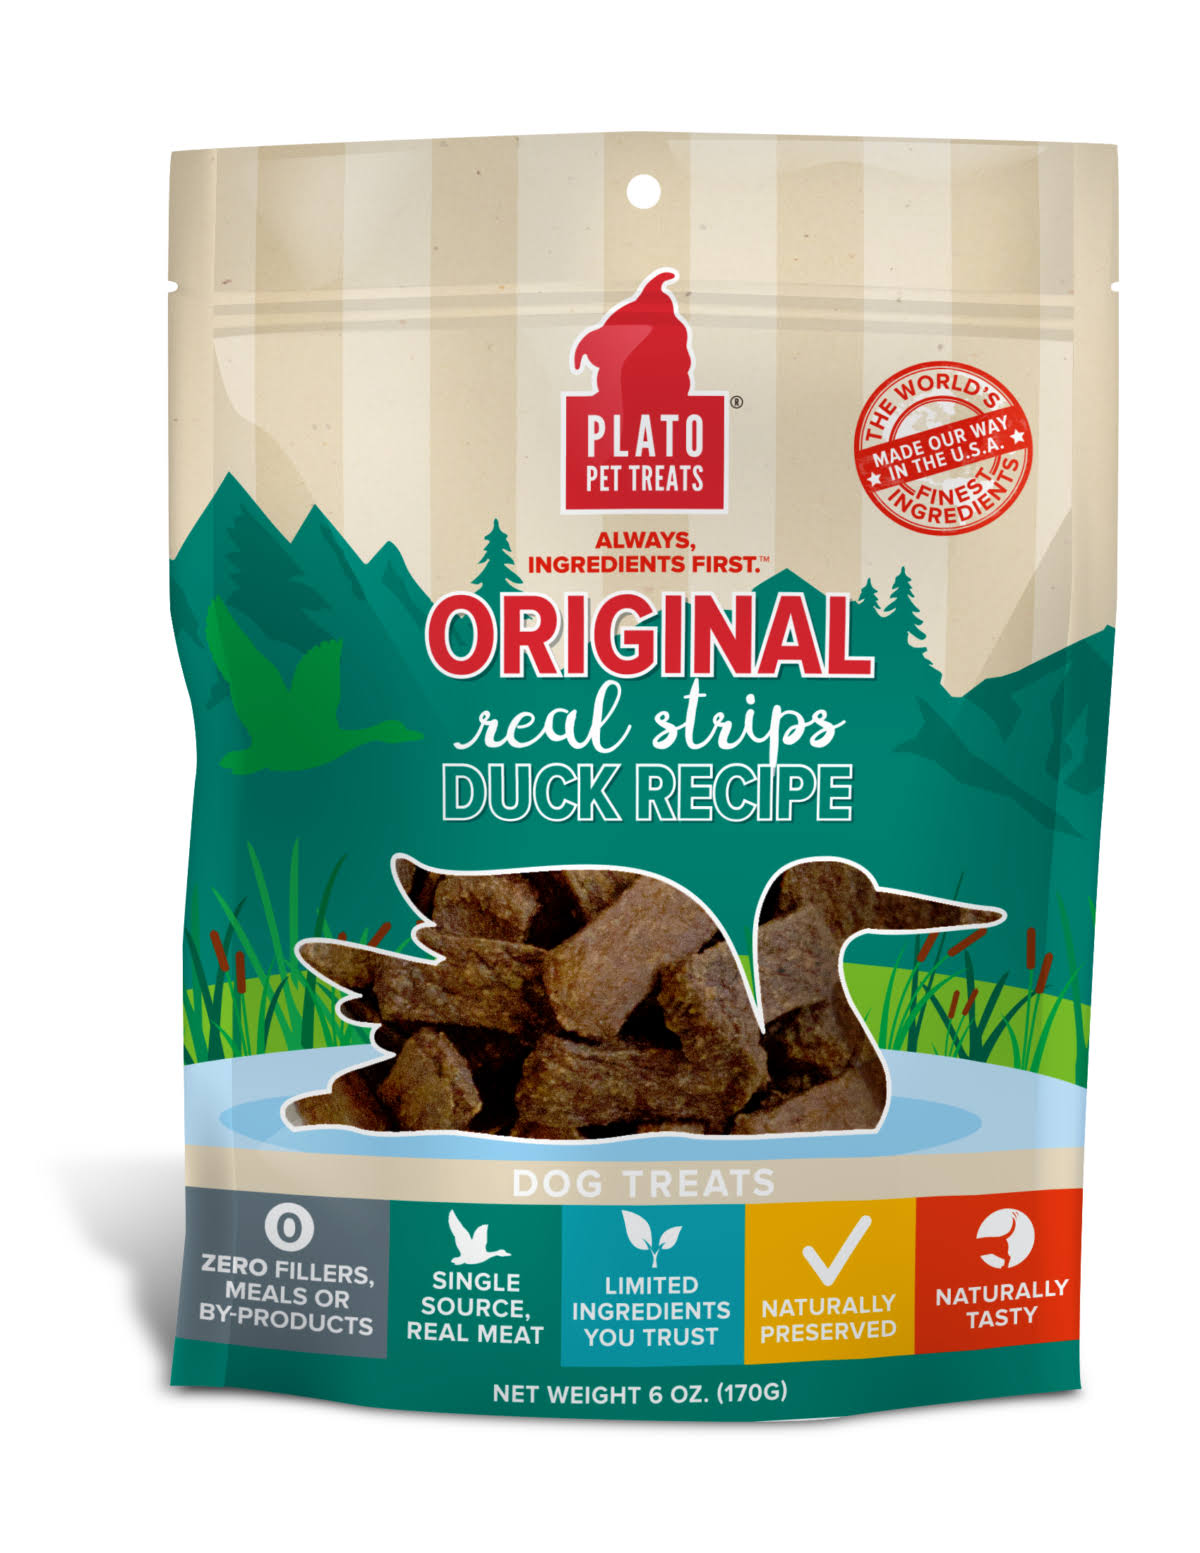 Plato Original Real Strips Duck Recipe Dog Treats, 18 oz.